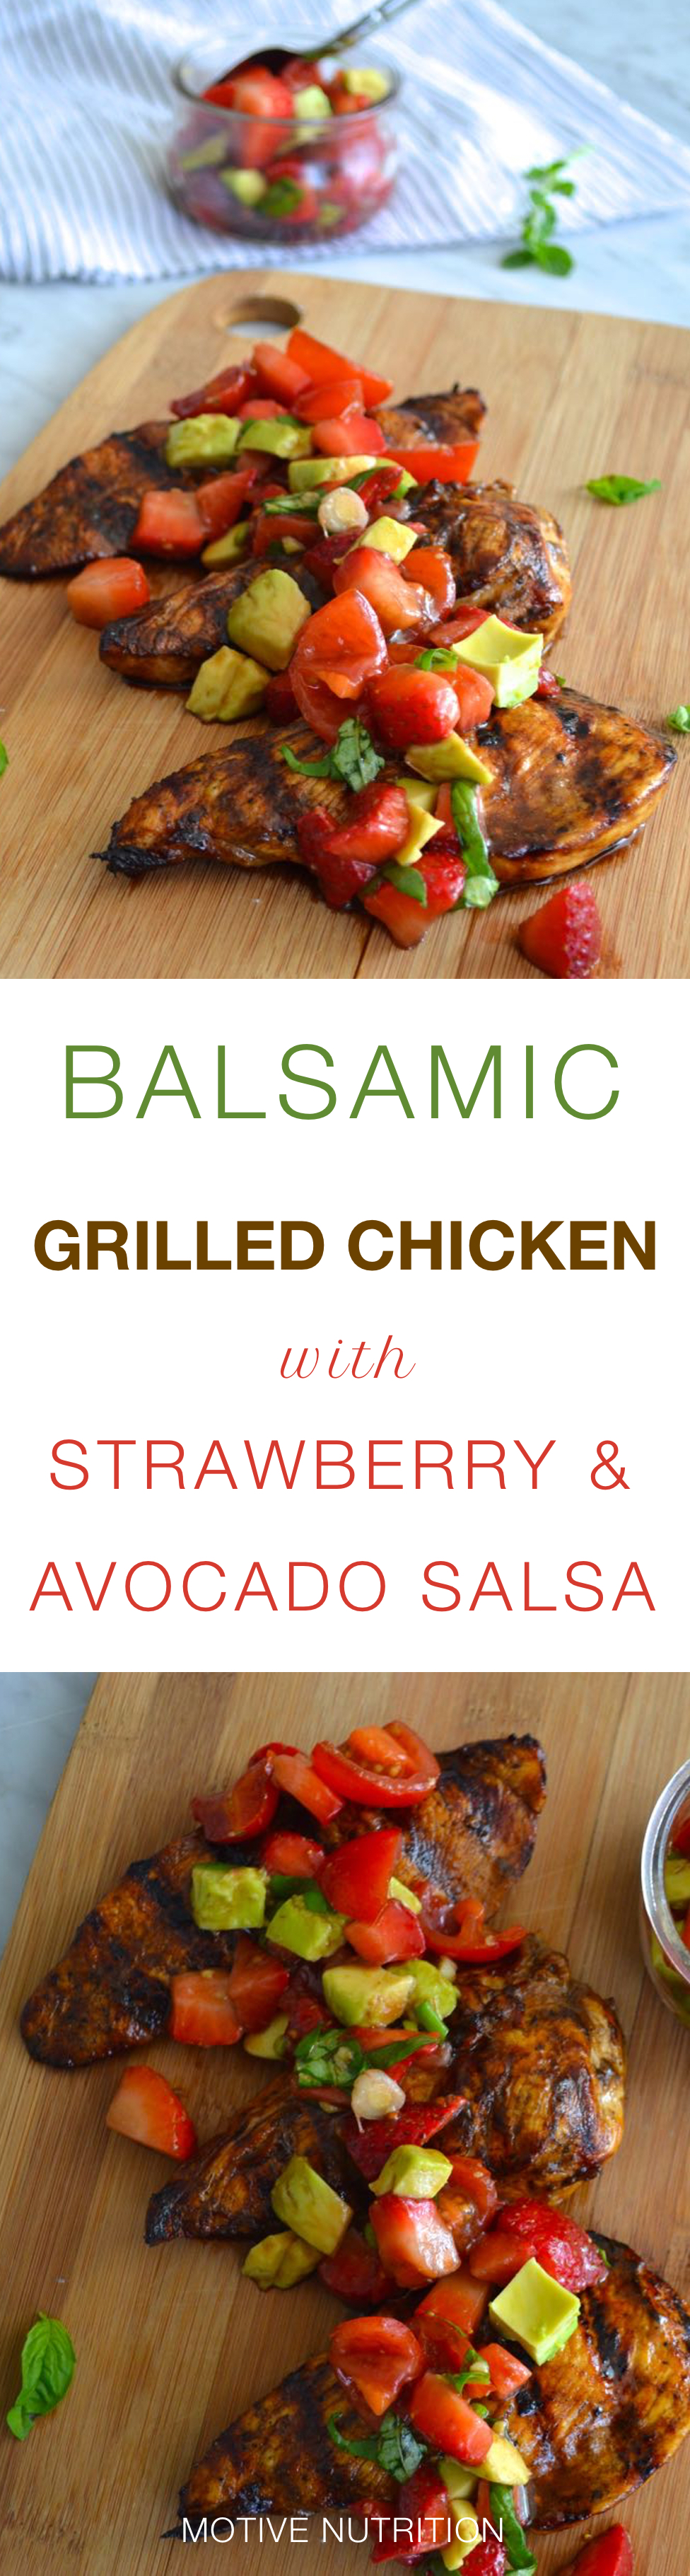 Balsamic Grilled chicken with strawberry and avocado salsa pin